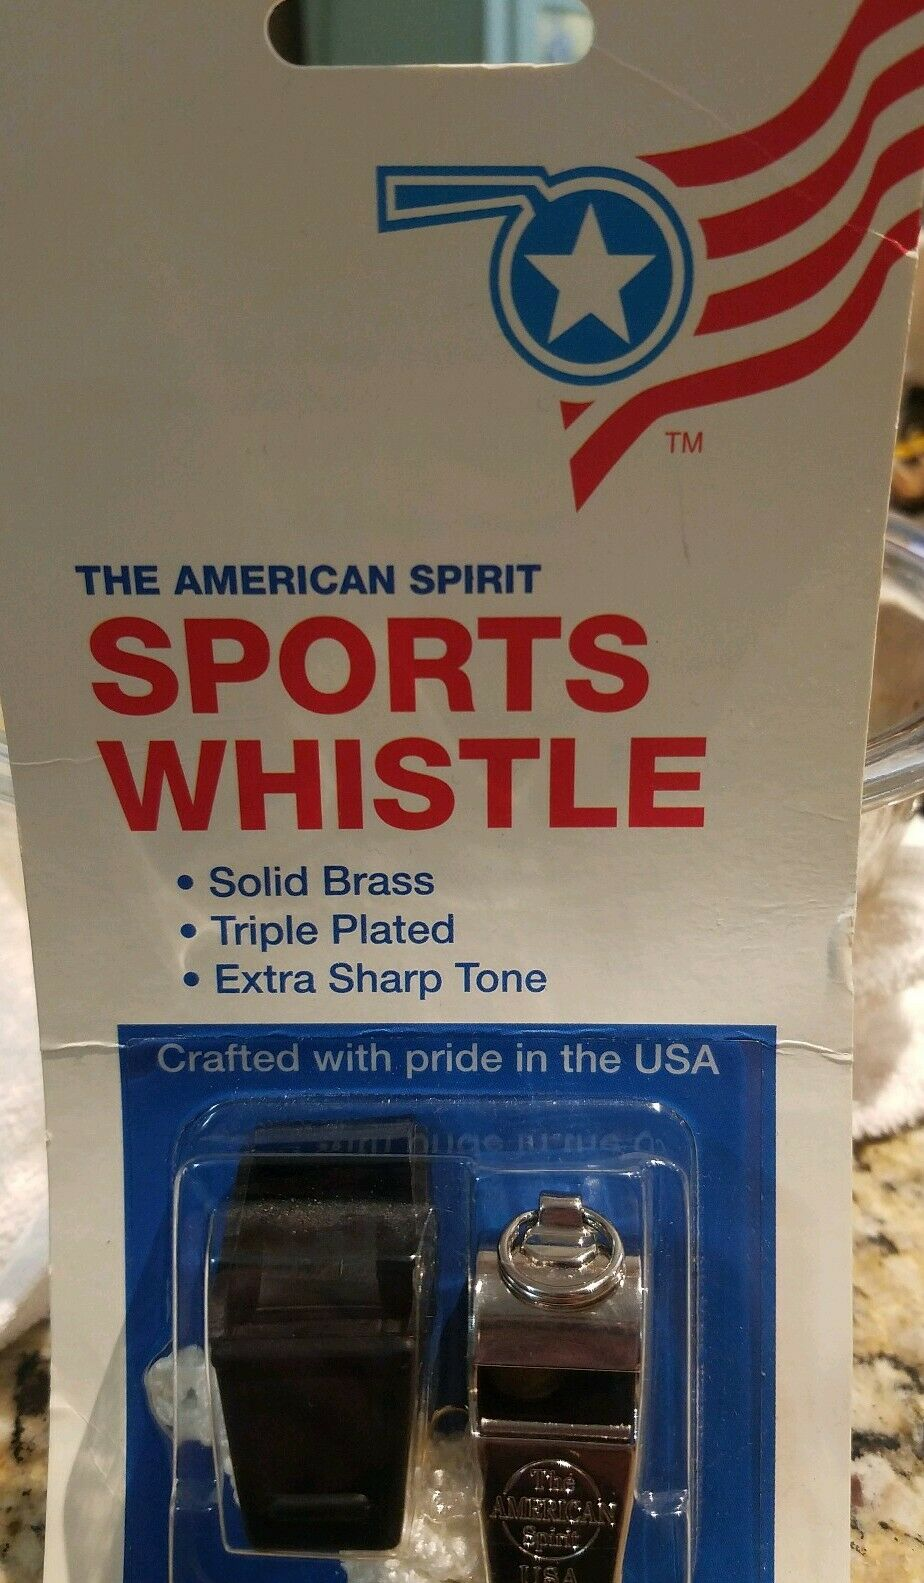 5 Packs of The American Spirit Sports Whistle Solid Brass// Triple Plated